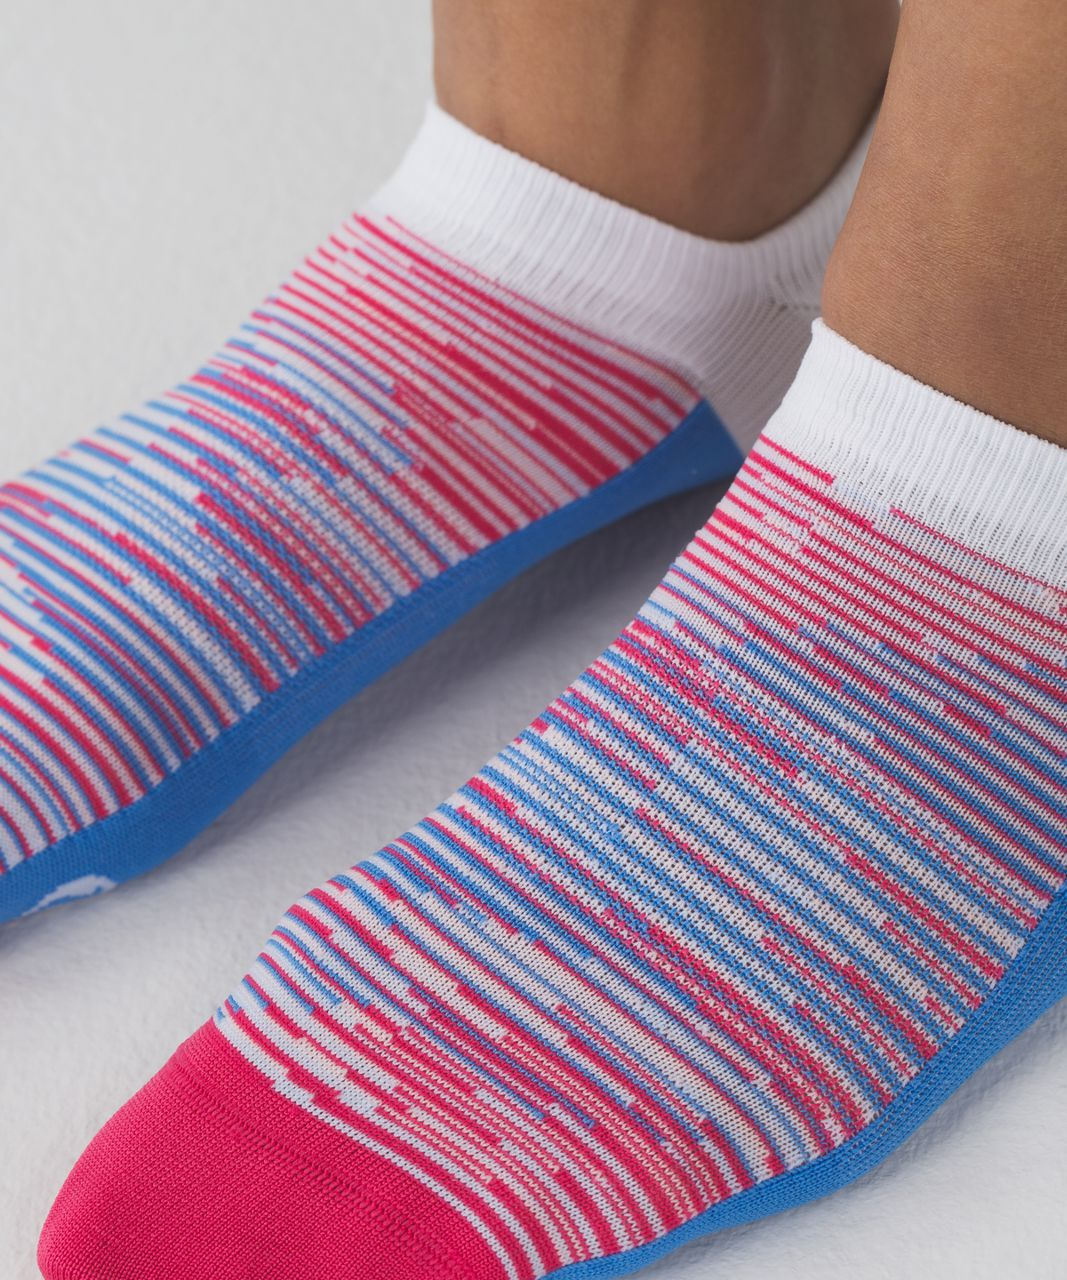 Lululemon Play All Day Sock - Porcelaine / Boom Juice / Minty Pink